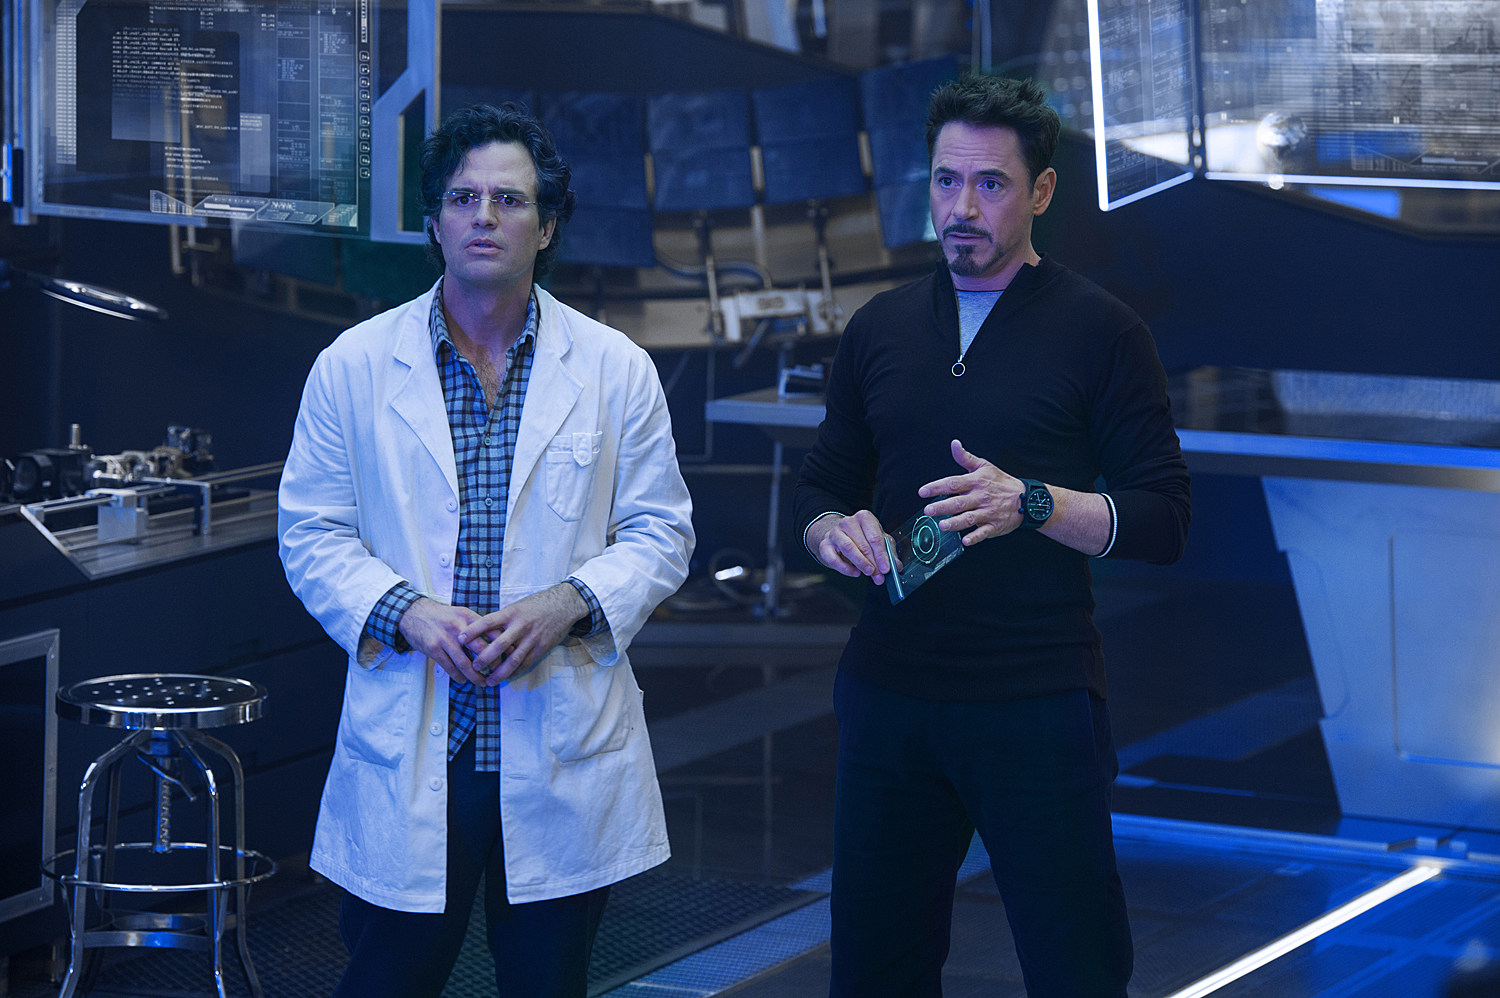 Avengers 2 Photo Mark Ruffalo Robert Downey Jr.